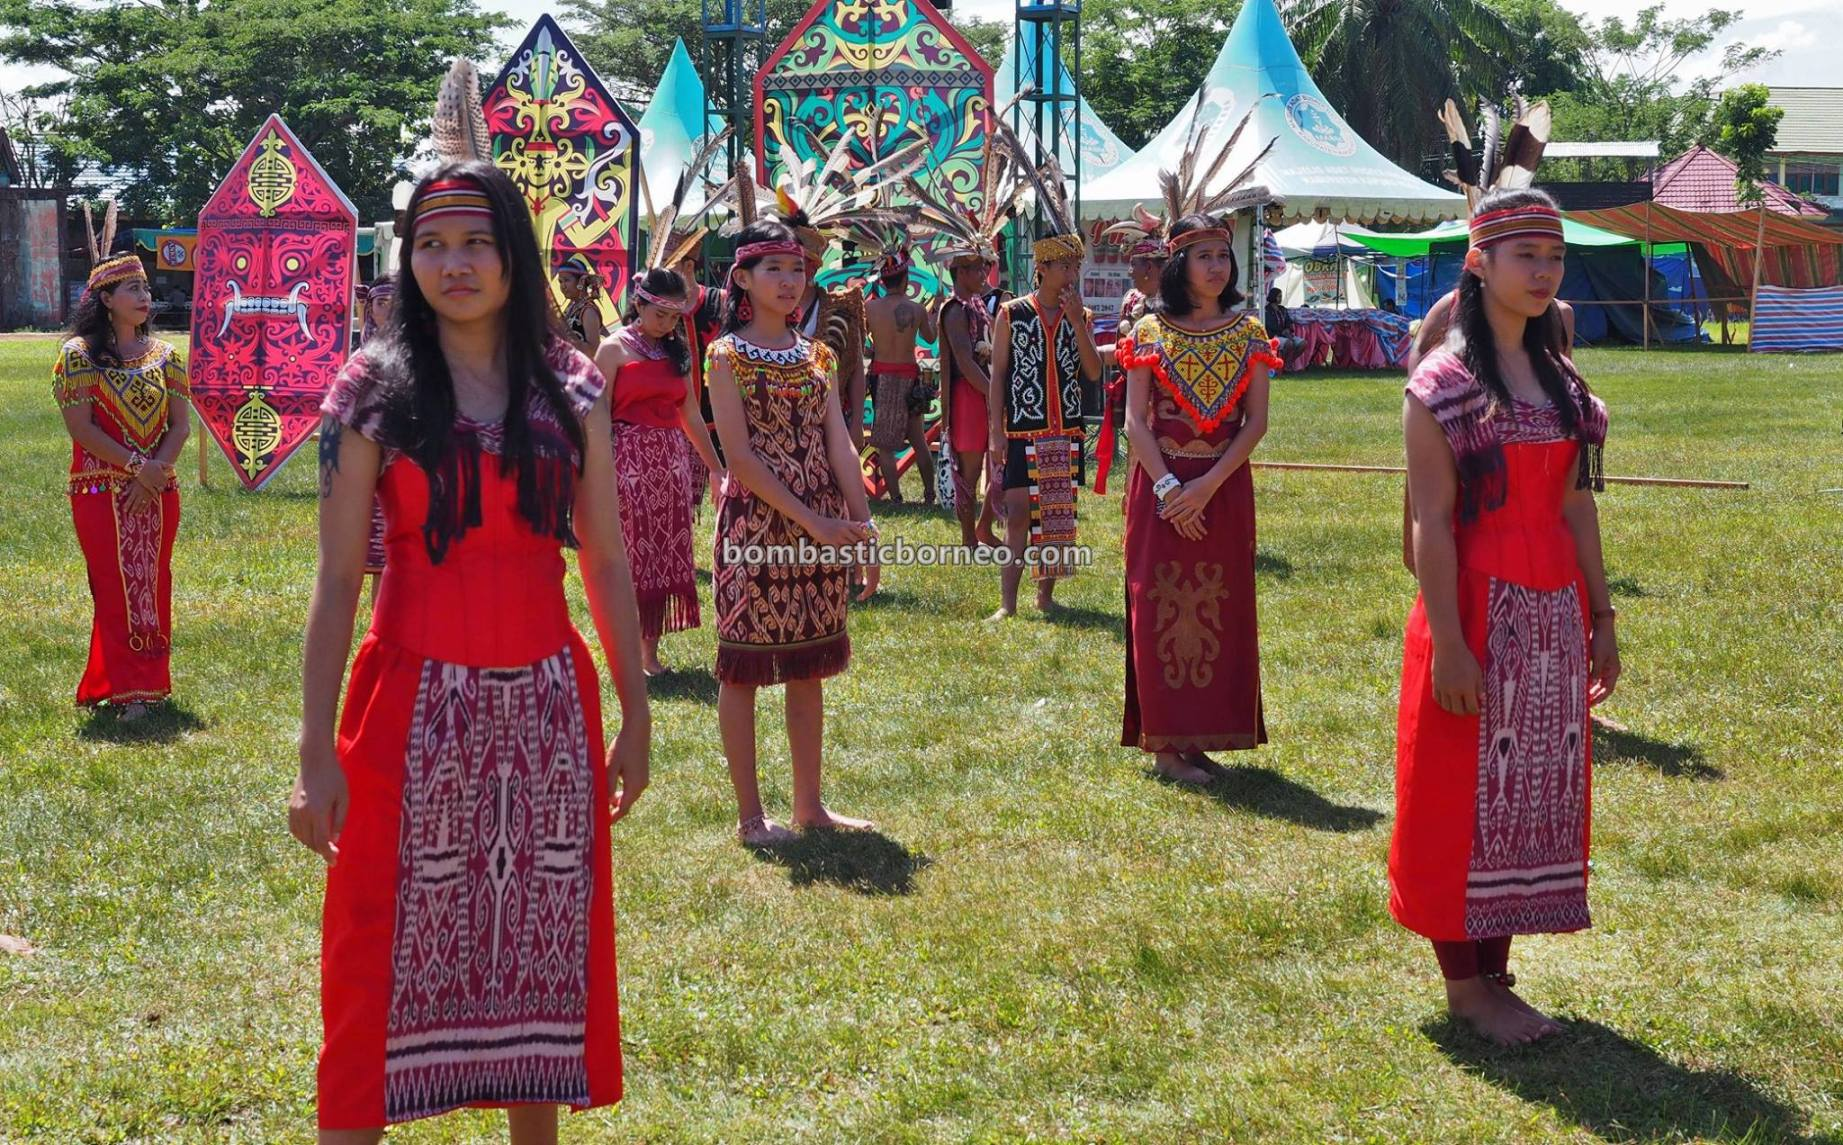 Kapuas Hulu, budaya, Kalimantan Barat, Putussibau, backpackers, indigenous, tribal, Suku Dayak, Obyek wisata, Tourism, travel guide, Cross Border, 印尼甘布安斯乌鲁, 西加里曼丹富都, 达雅克土著文化